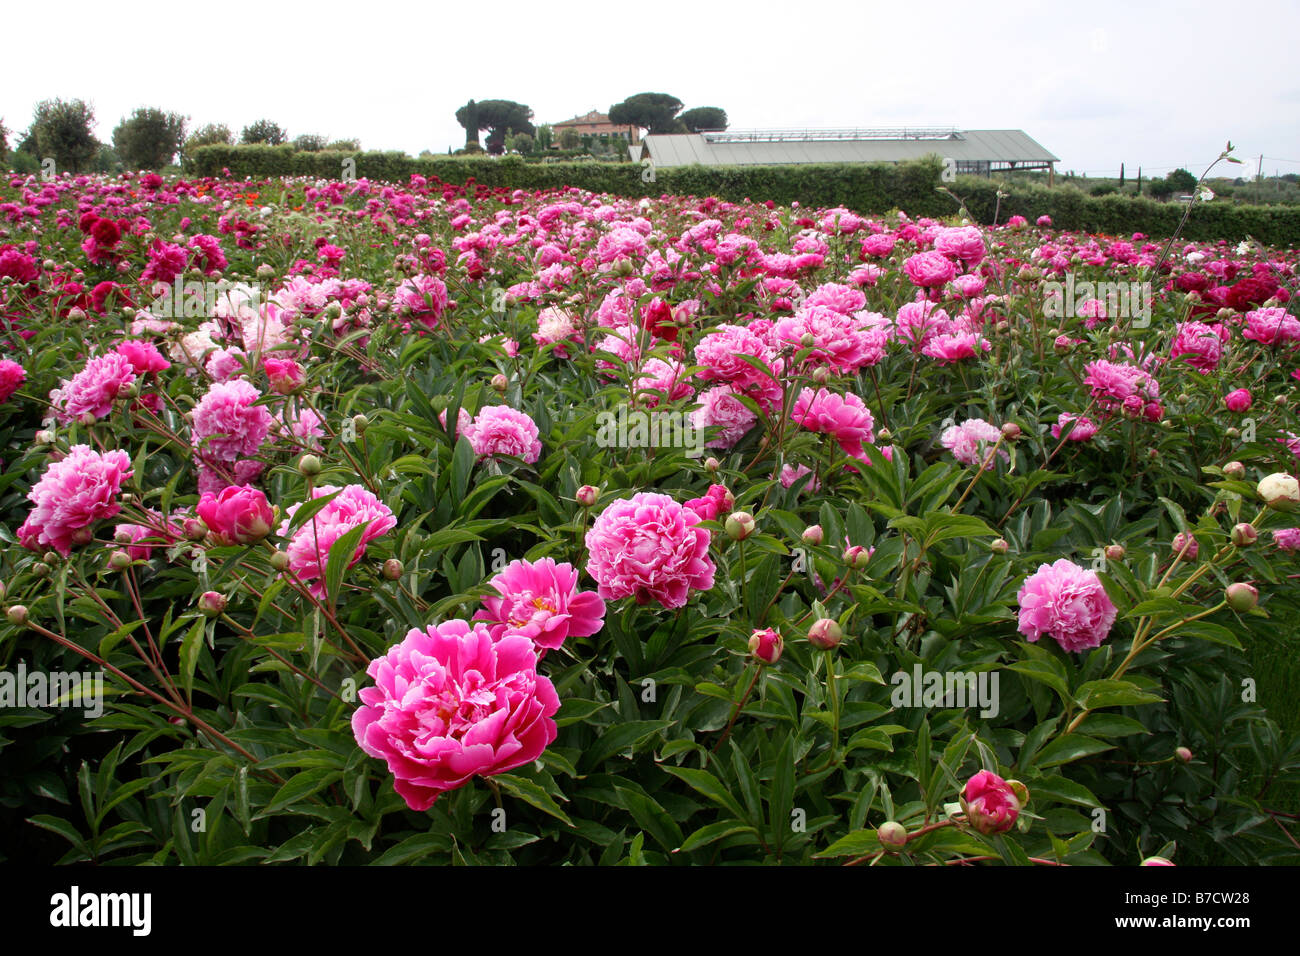 A field of tree peonies - Stock Image